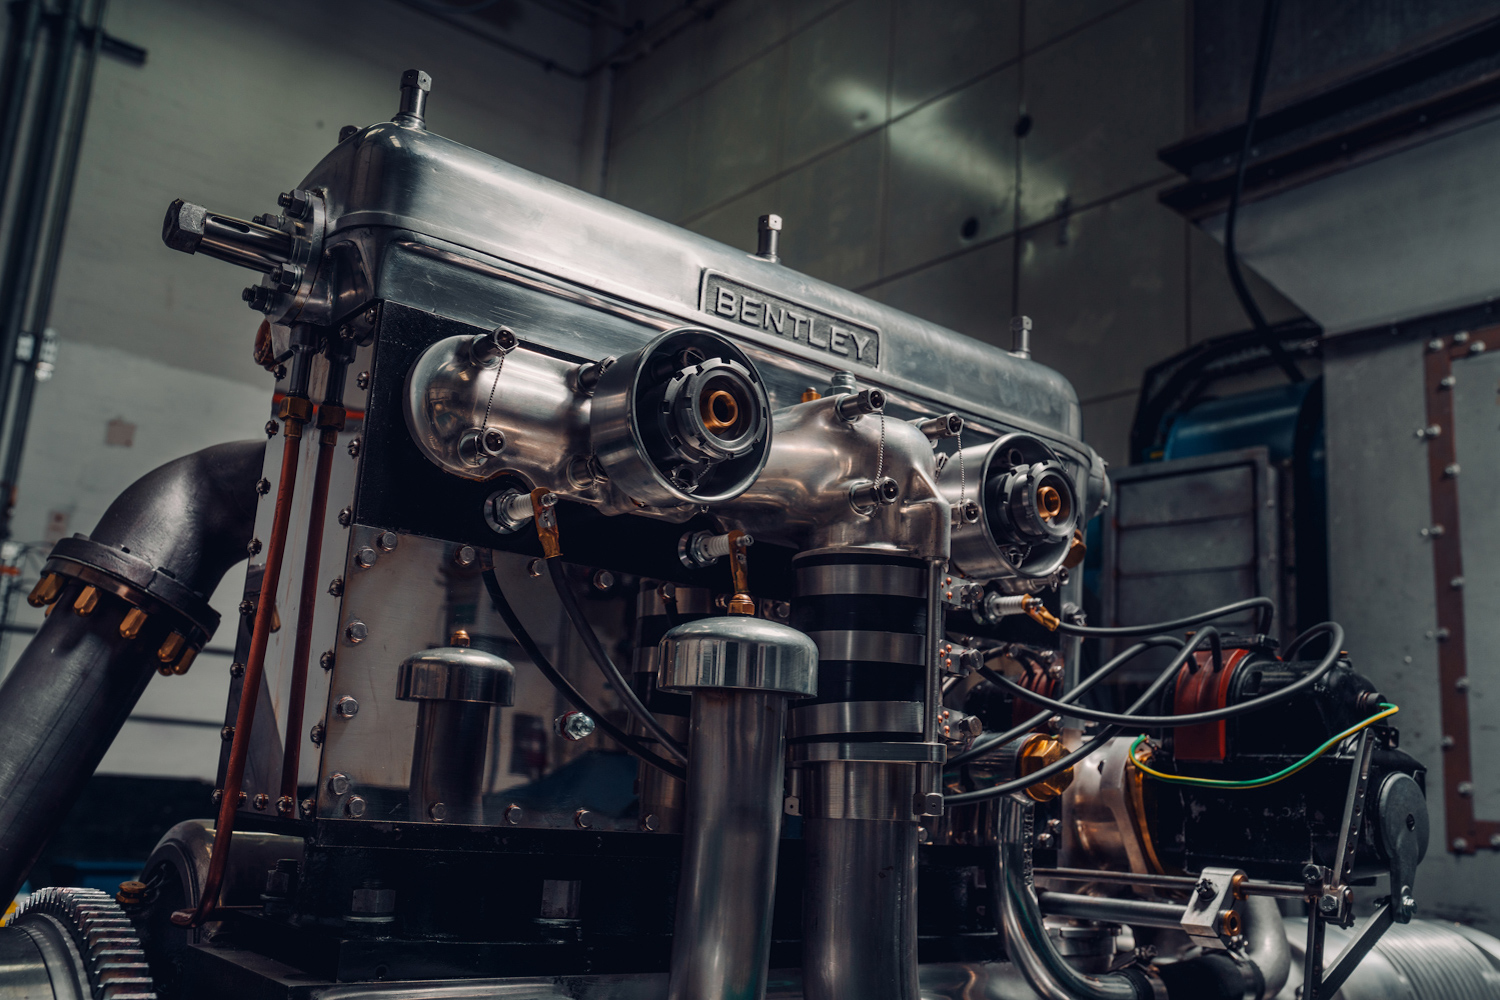 Bentley 'Blower' engine is all fired up